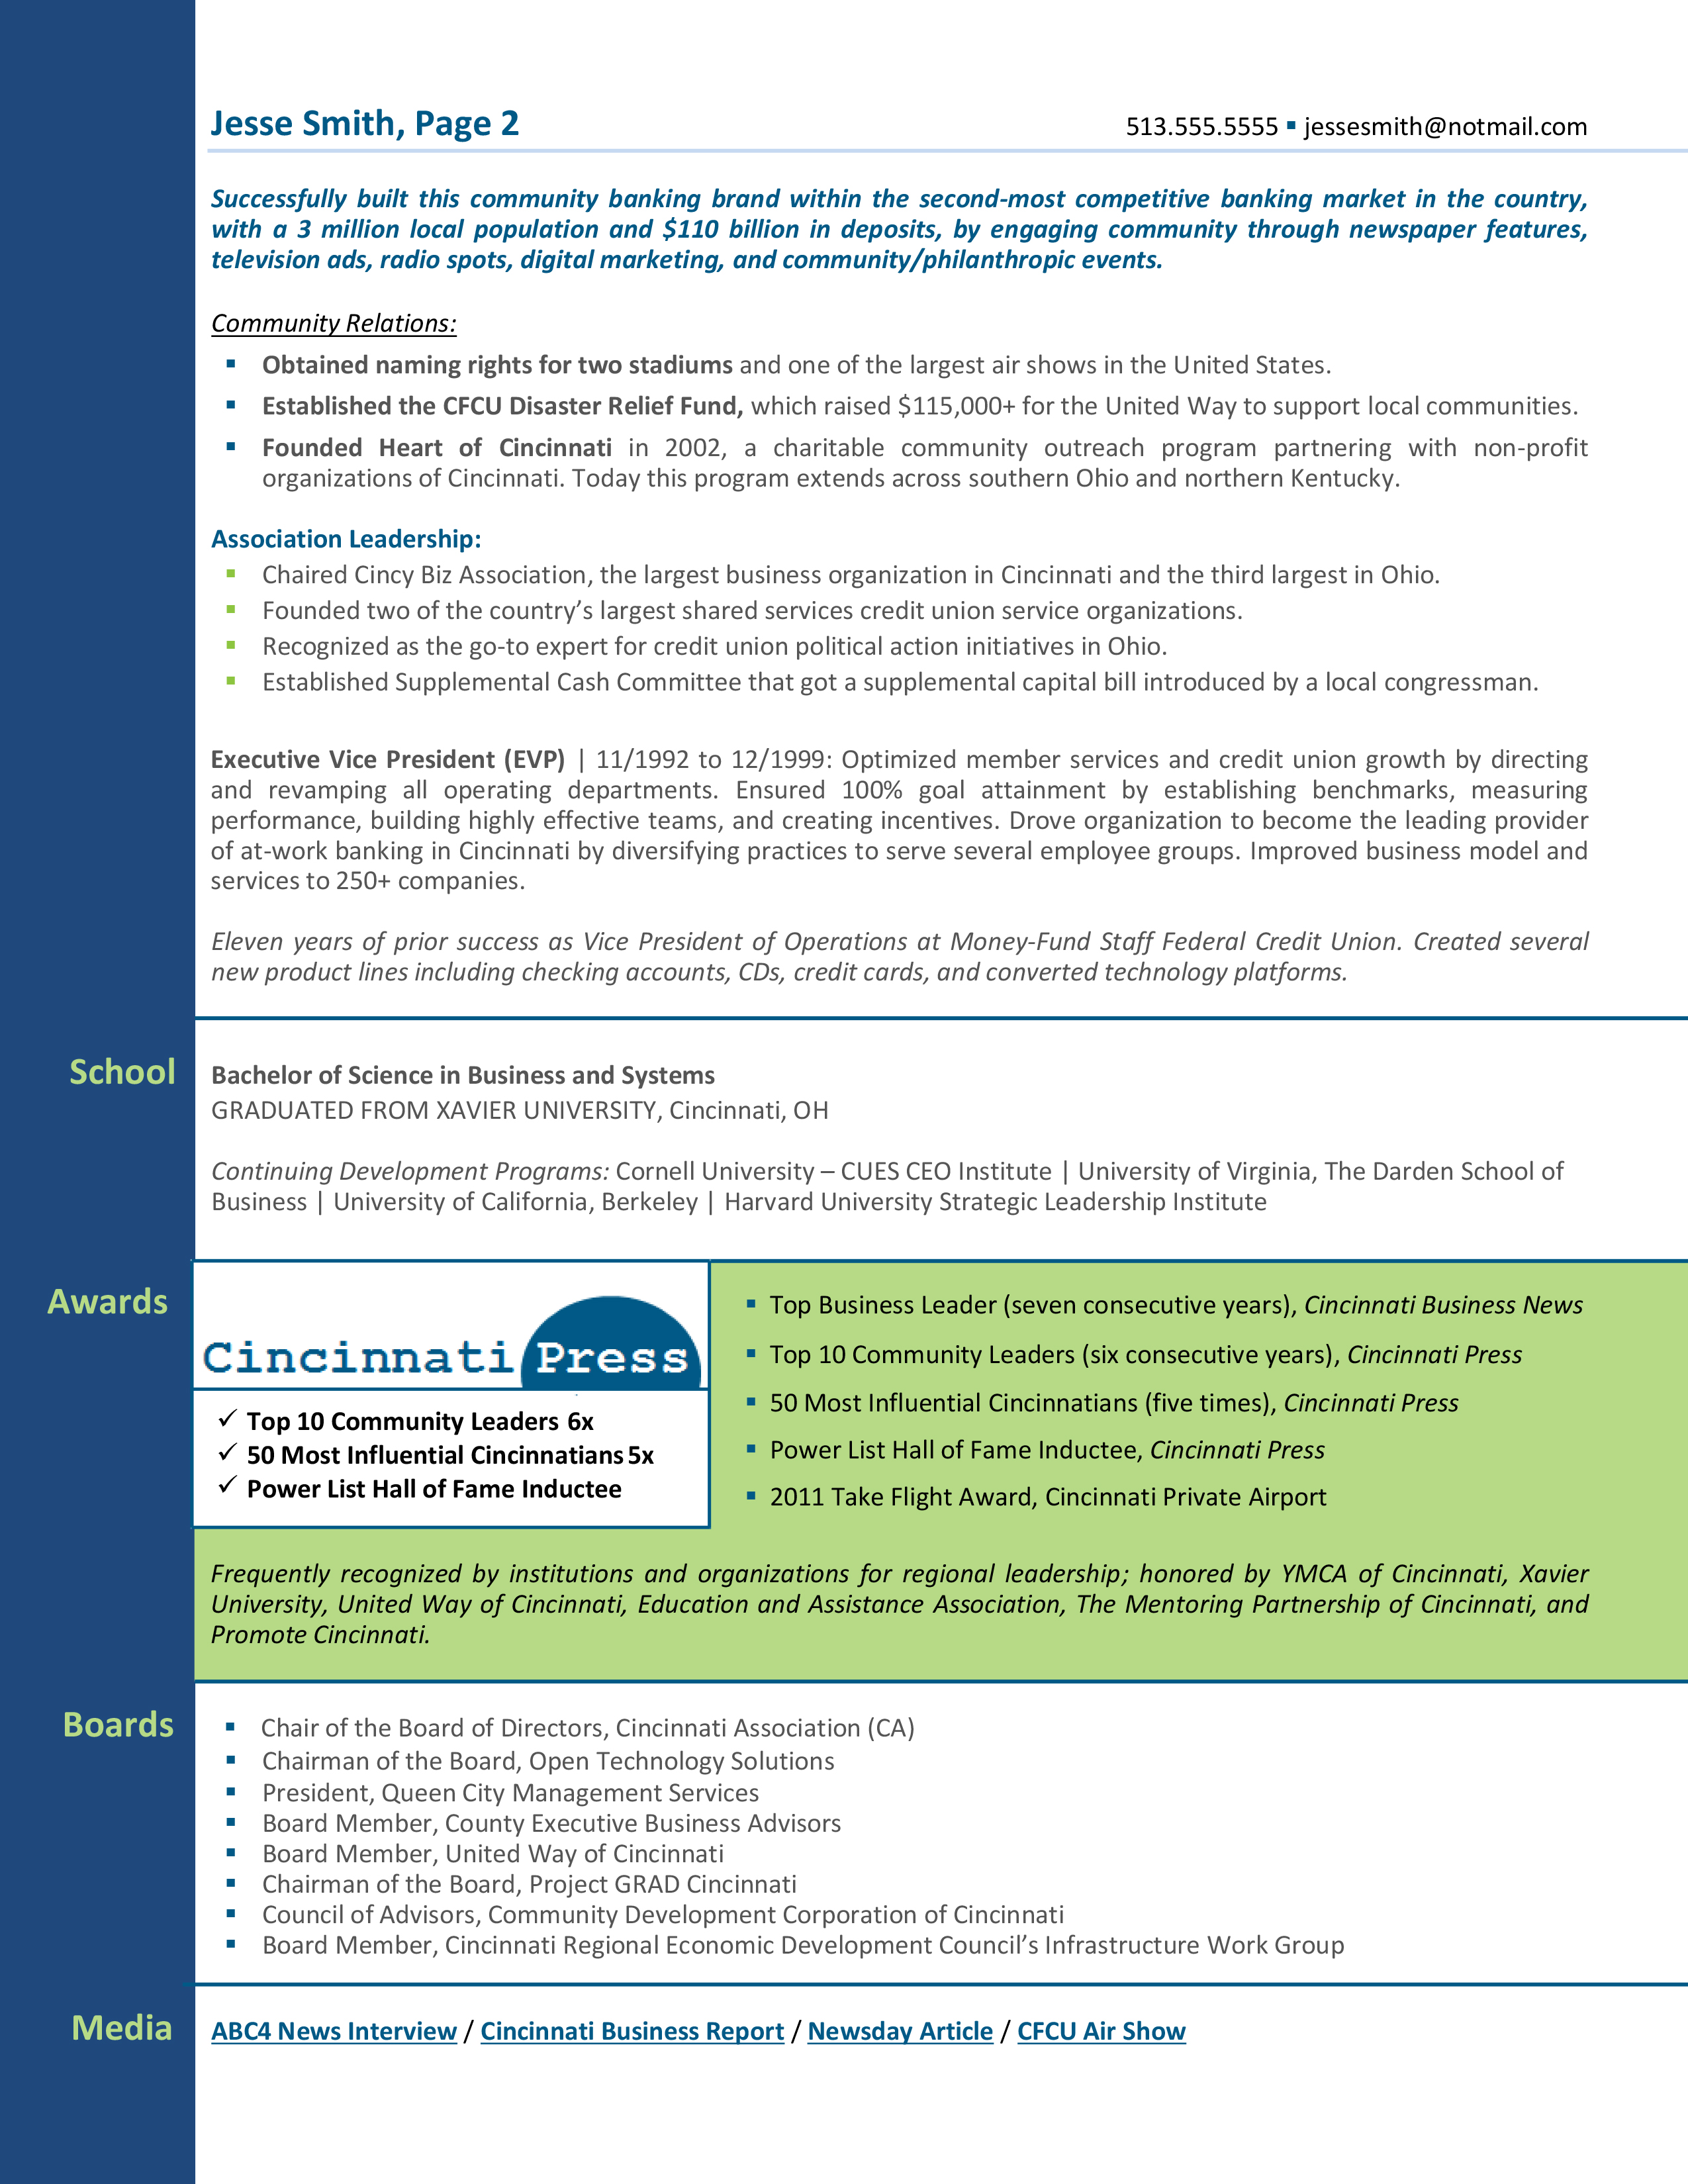 Resumes Online Inc Graphic Resumes Executive Resume Services